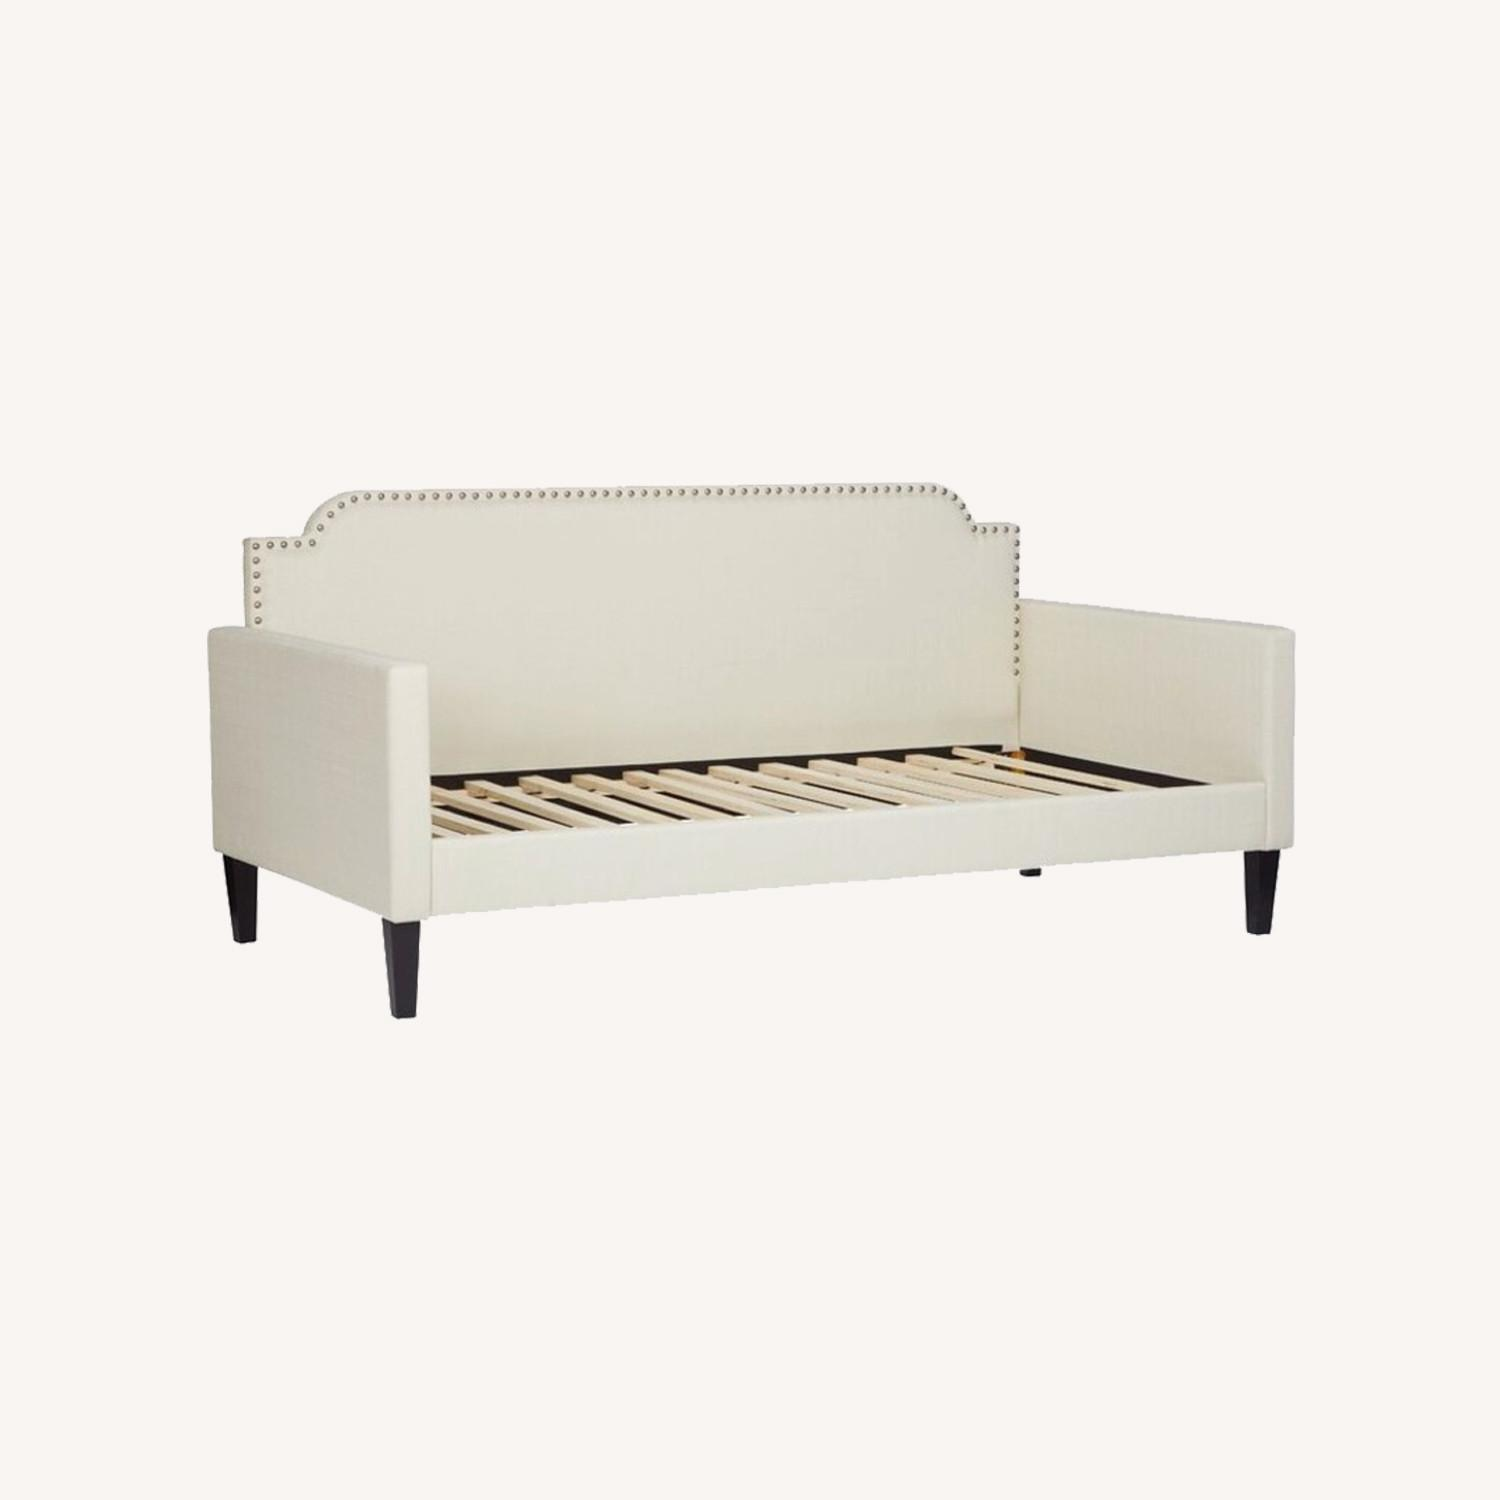 Cream Daybed with Silver Nailhead Trim - image-0